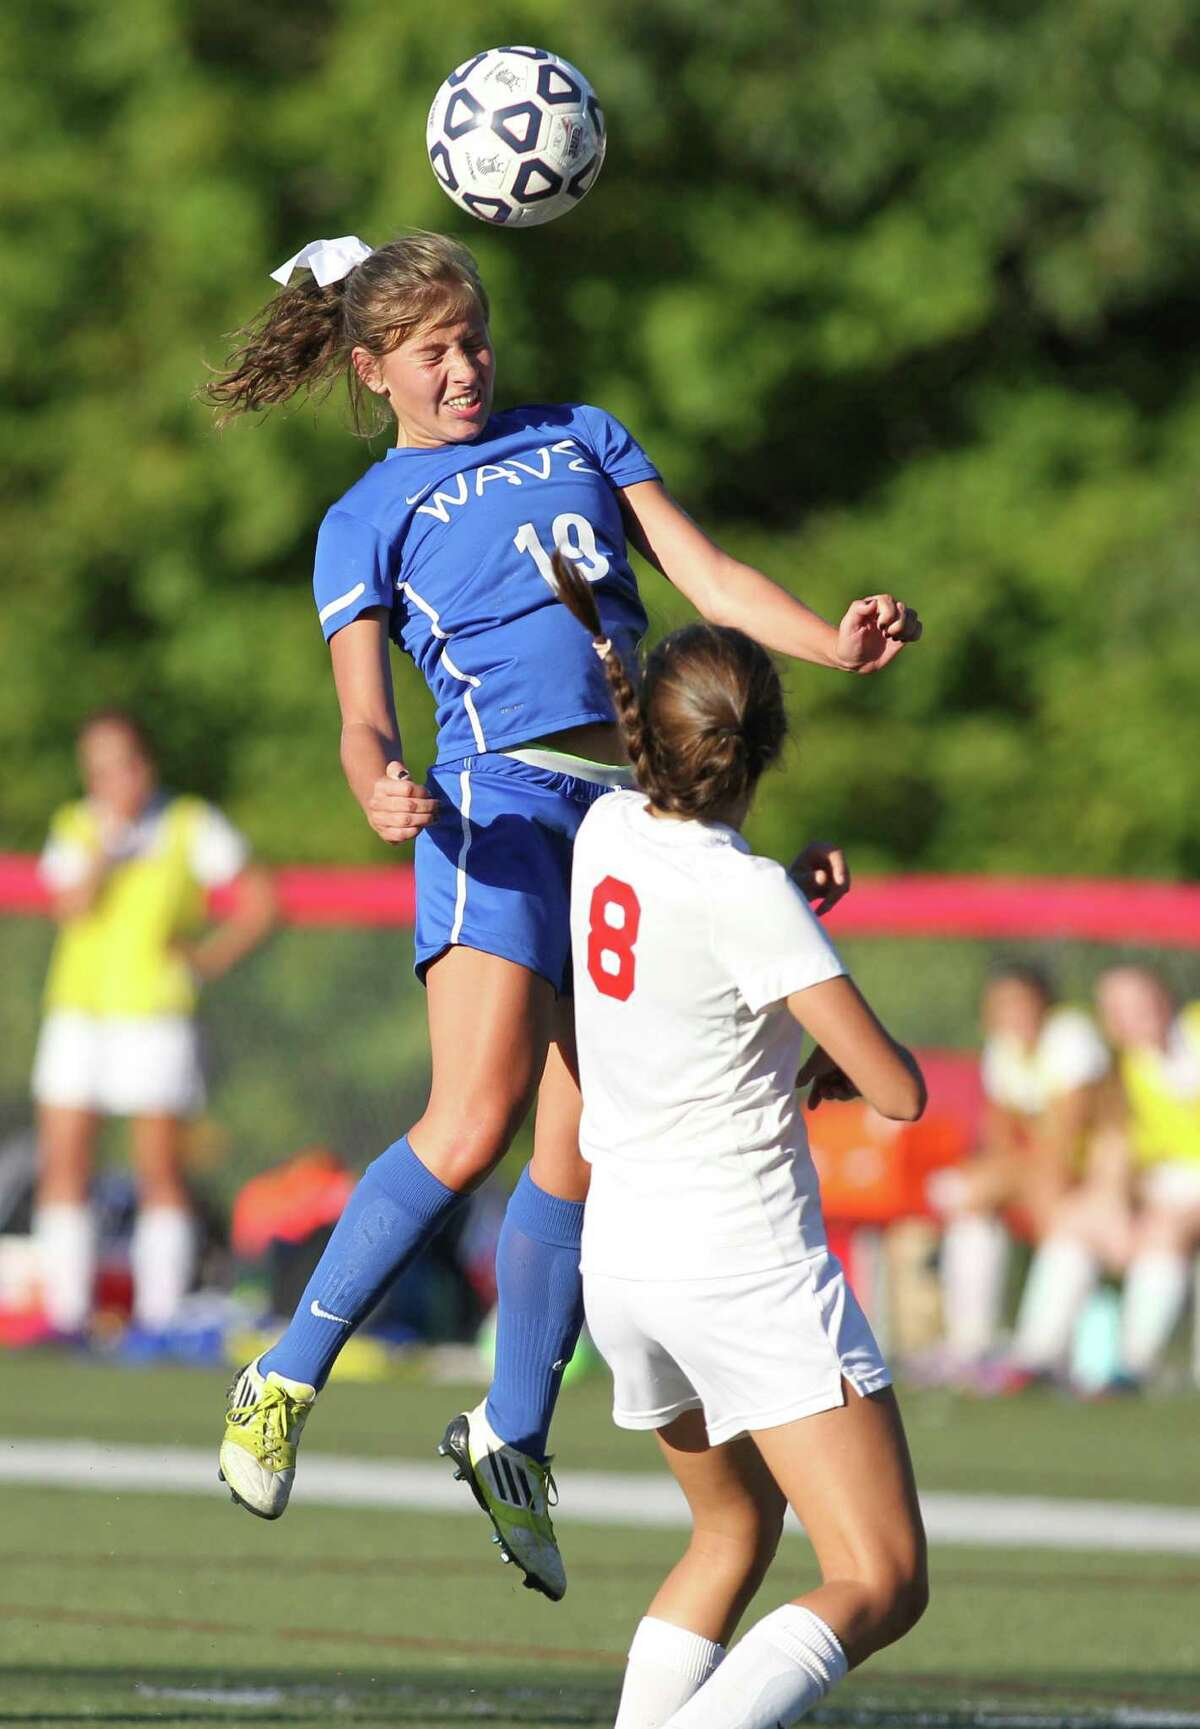 Darien's Morgan Sawitsky heads the ball over New Canaan's Mia Carroll during second half soccer action in New Canaan, Conn. on Monday Sept. 30, 2013. Darien won the match, 2-0.